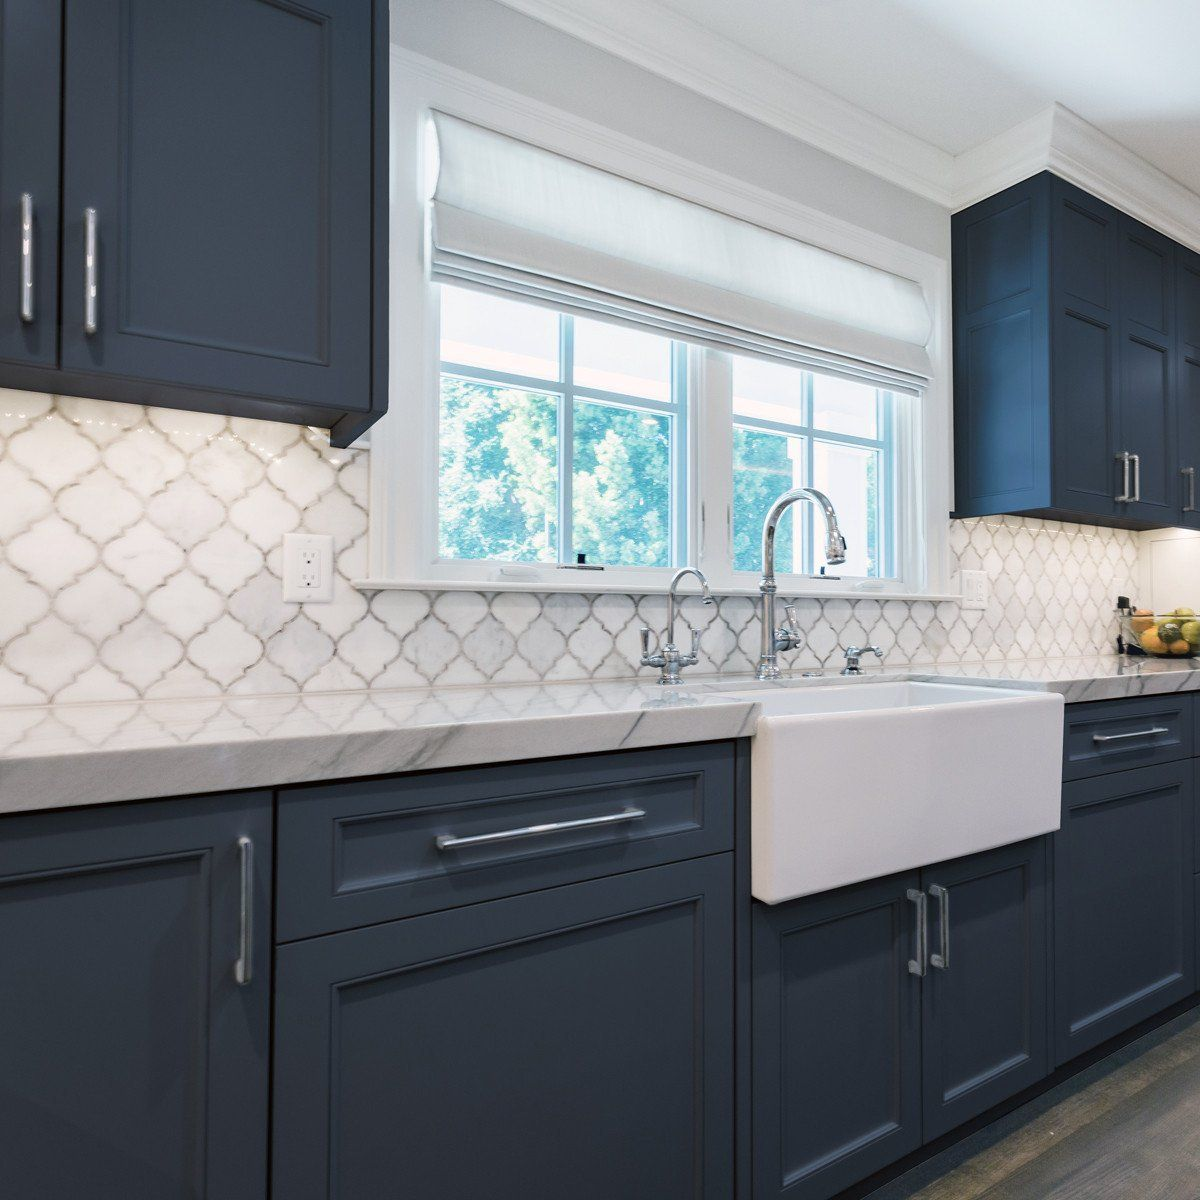 Nuvo Oxford Blue Cabinet Makeover Paint Kit Walmart Com Walmart Com In 2020 New Kitchen Cabinets Modern Kitchen Cabinets Blue Cabinets